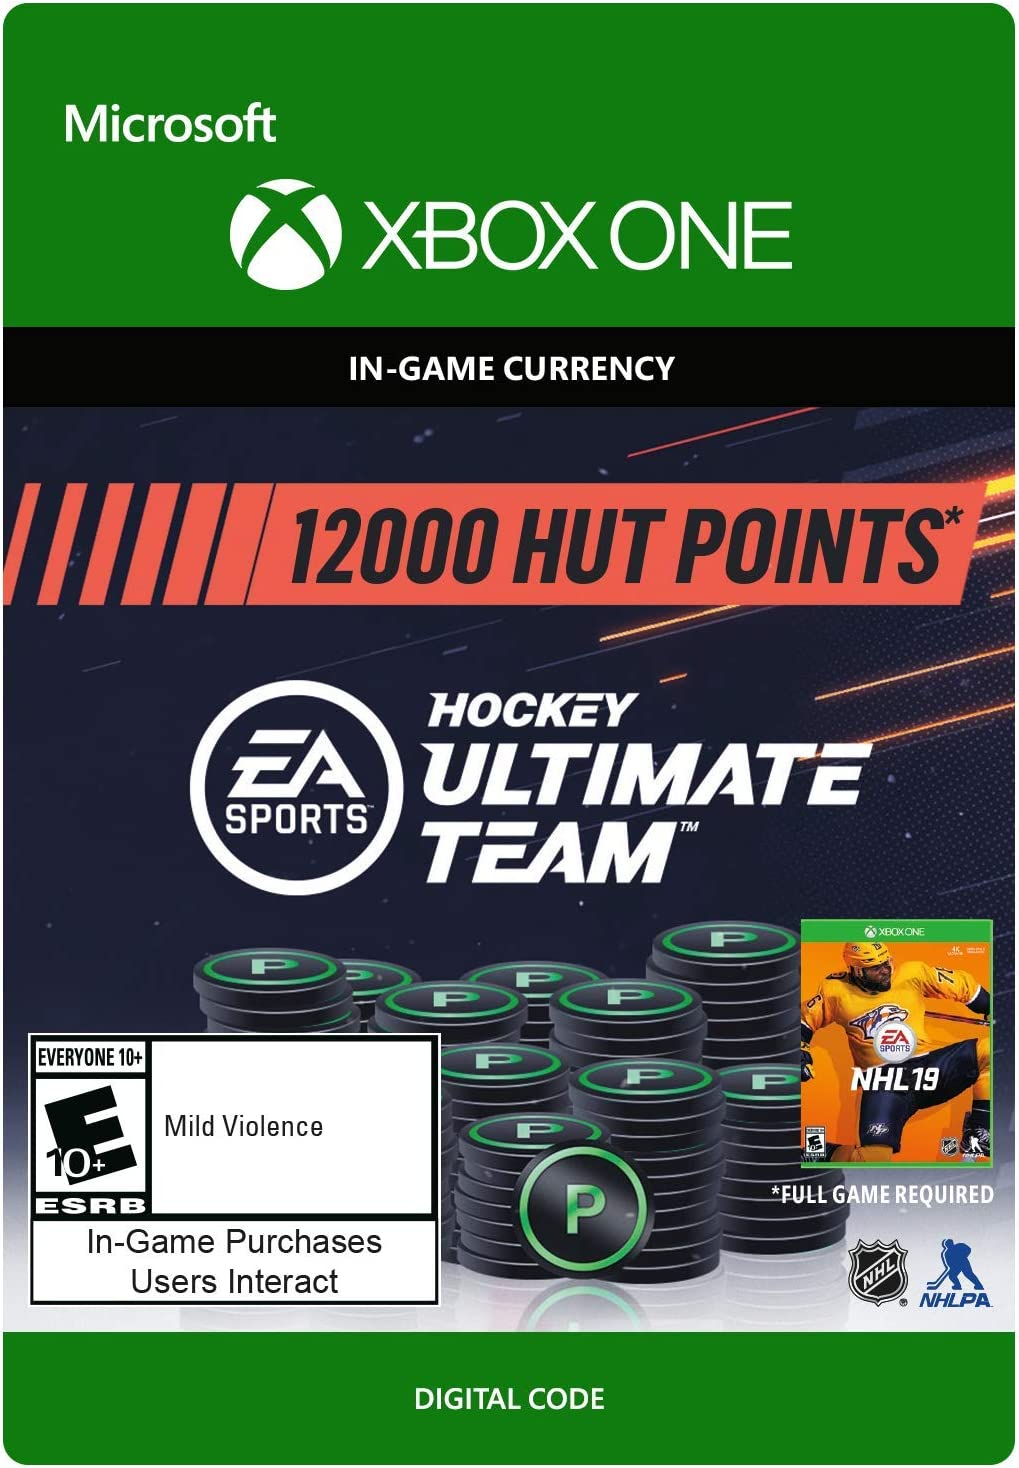 Amazon.com  NHL 19 Ultimate Team NHL Points 5850 - Xbox One  Digital Code    Video Games 69d6dec2f